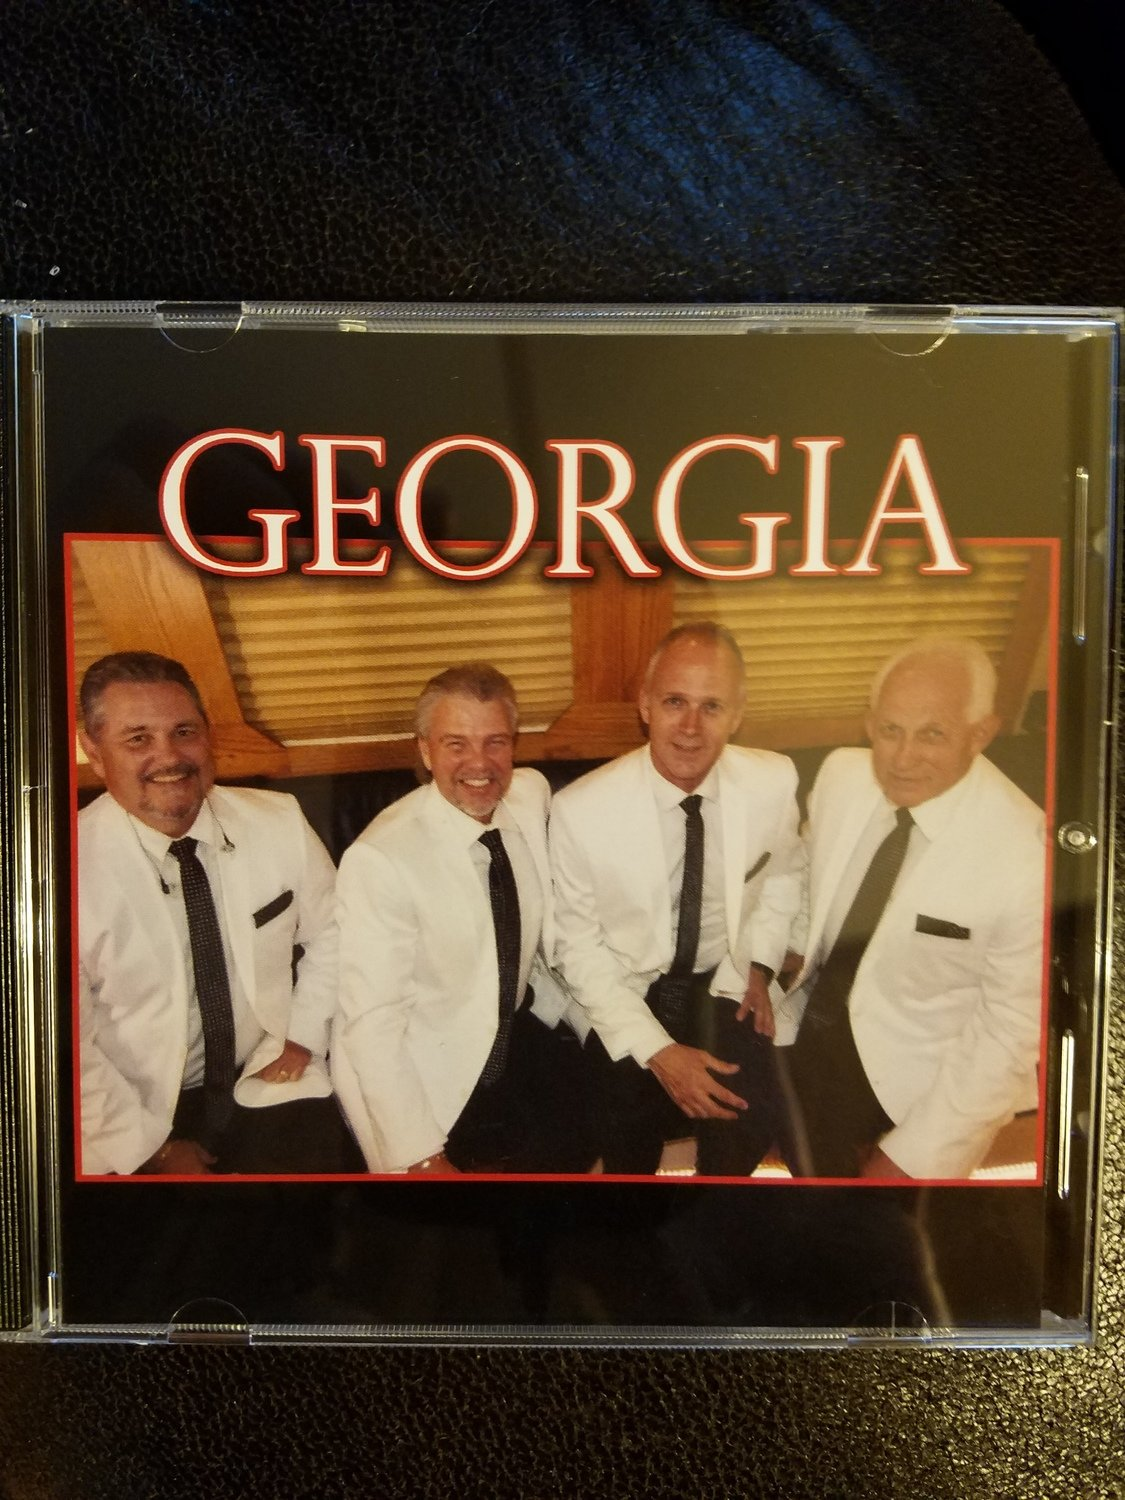 40 Years and Forever - Georgia